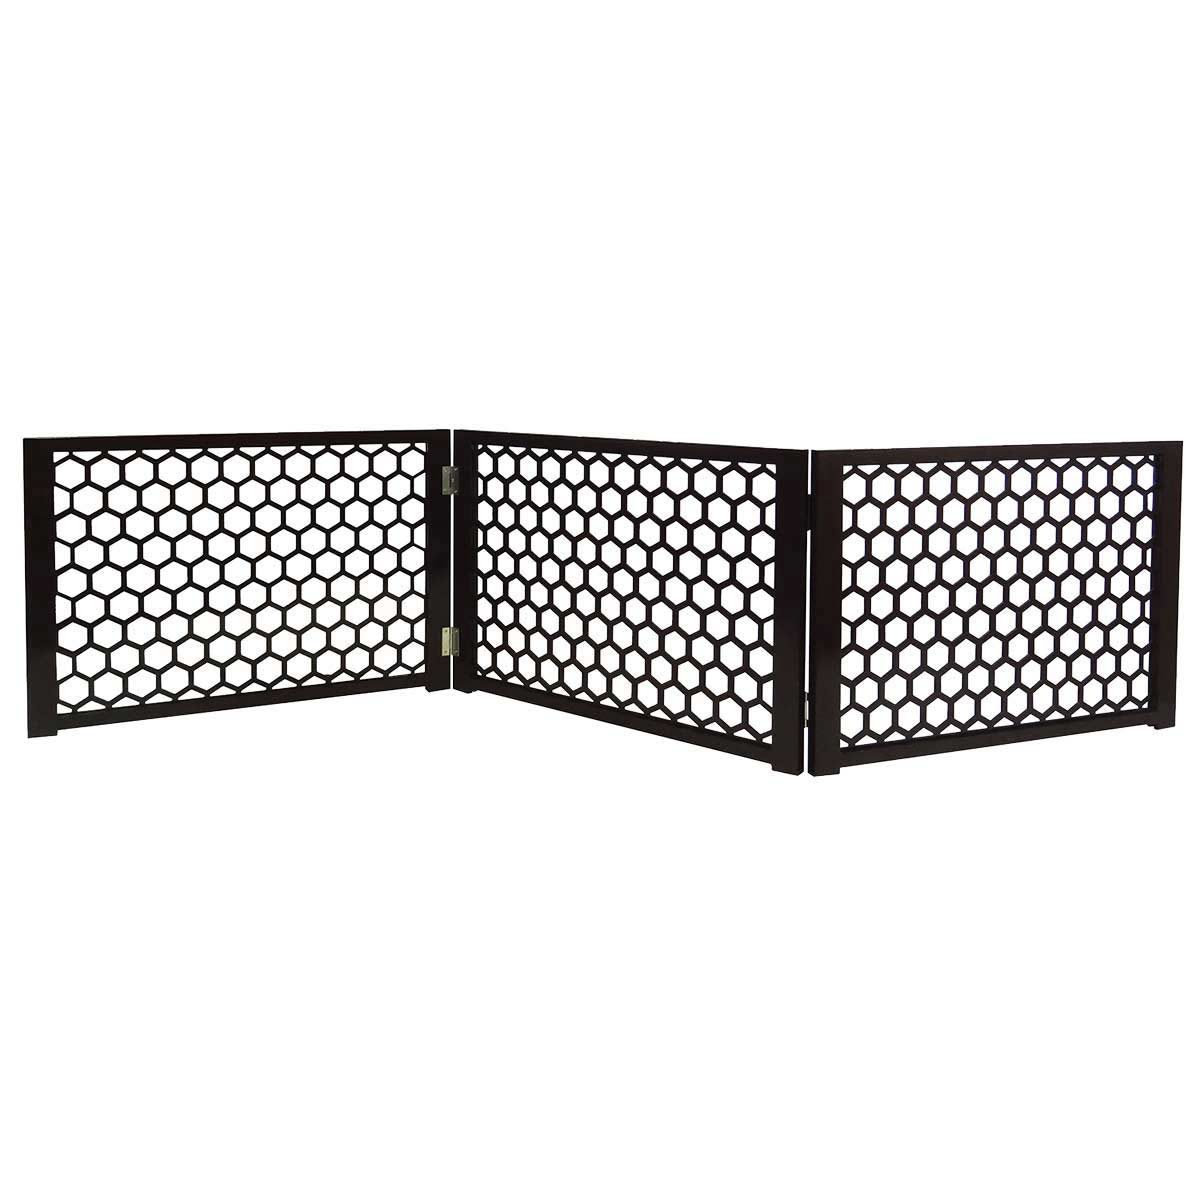 Four Paws Decor Free Standing Portable Gate - Dark Brown